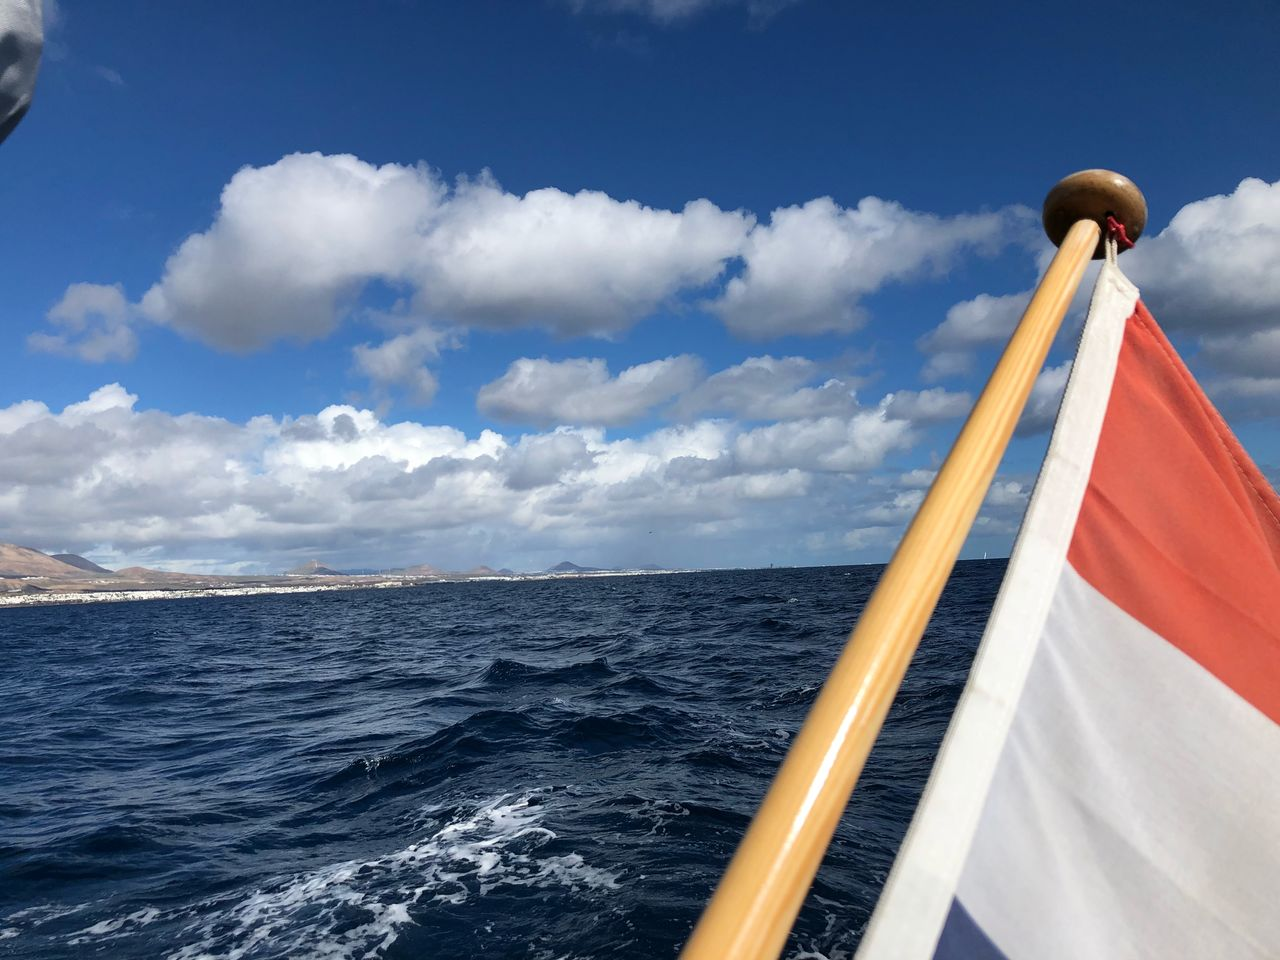 sea, sky, water, cloud - sky, flag, nautical vessel, horizon over water, horizon, mode of transportation, nature, day, no people, transportation, beauty in nature, scenics - nature, patriotism, outdoors, sailing, motion, sailboat